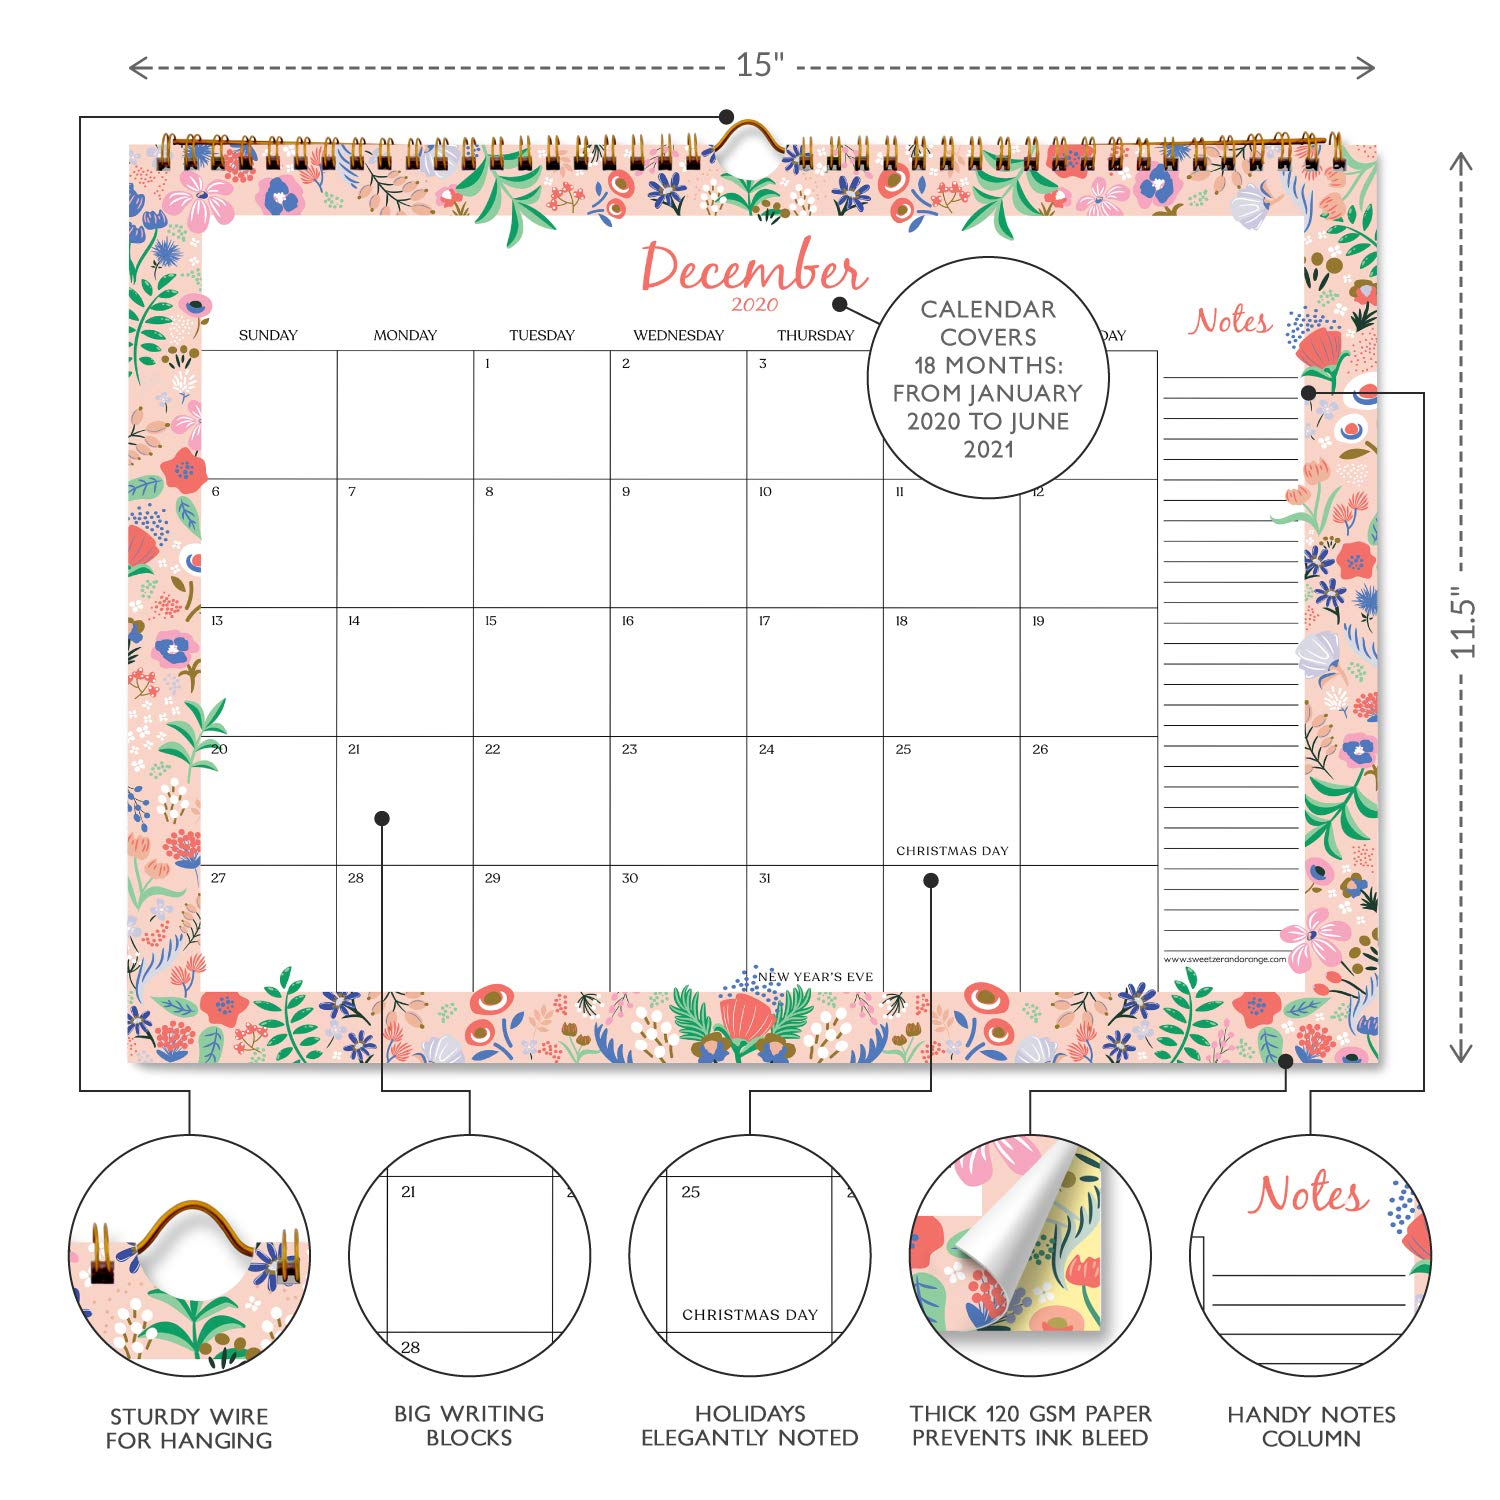 Floral Border Monthly Planner Sweetzer /& Orange 2020 Calendar 11.5 x 15 Inch Hanging Wall Calendar Daily Wall Calendars for Office Organization 18 Month Office or Family Wall Calendar 2020-2021